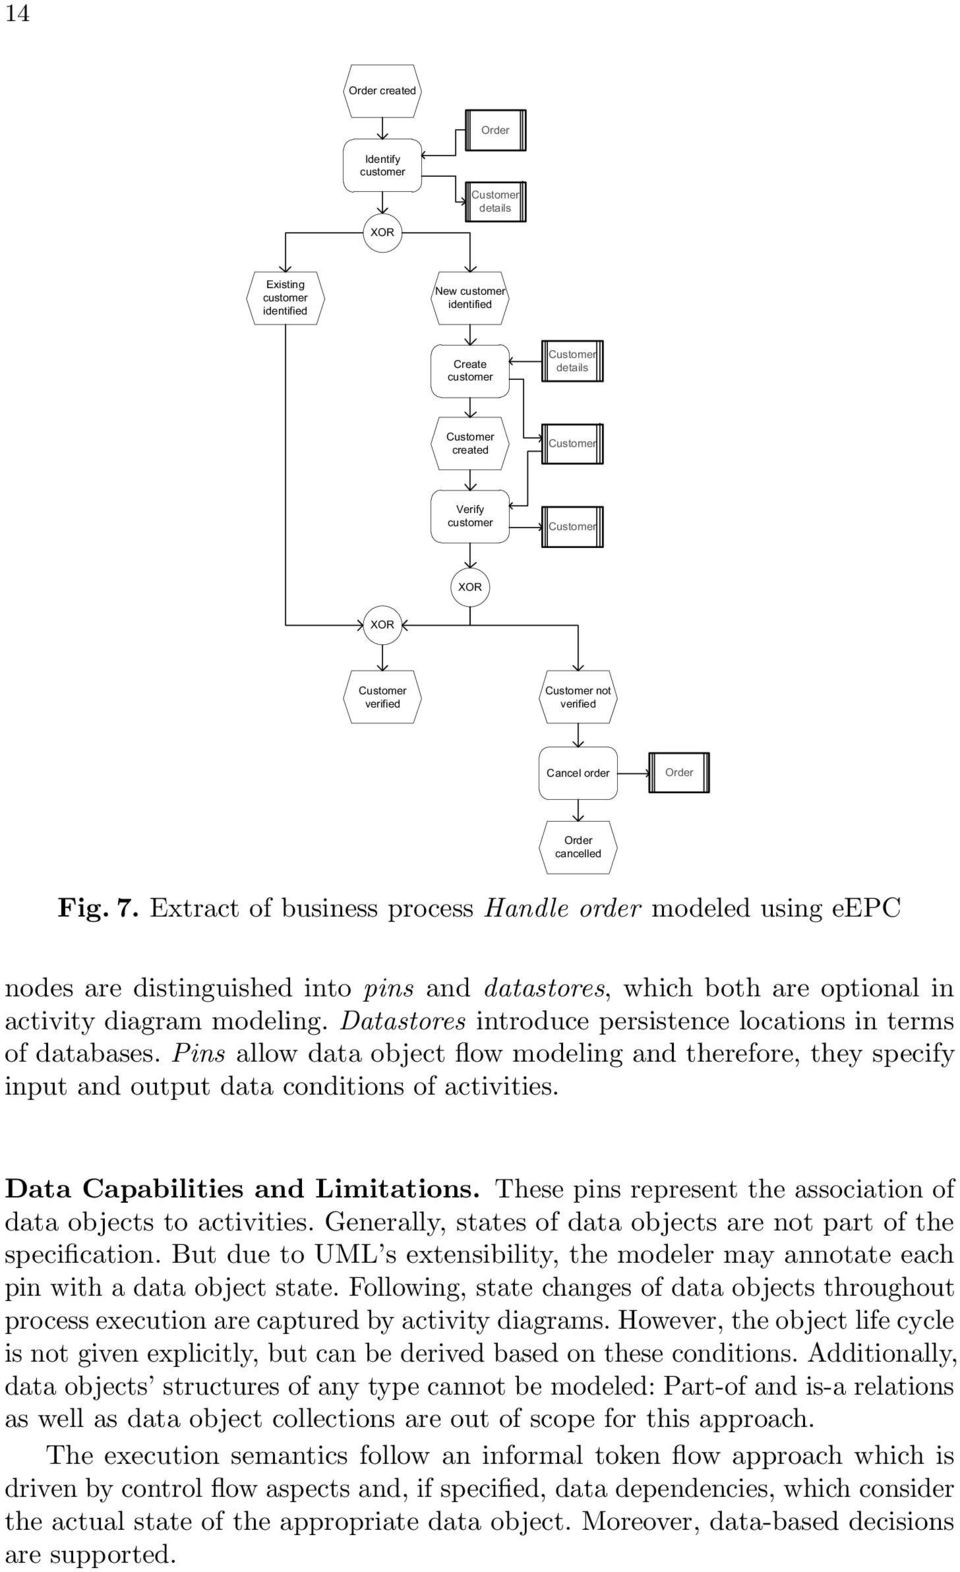 Extract of business process Handle order modeled using eepc nodes are distinguished into pins and datastores, which both are optional in activity diagram modeling.